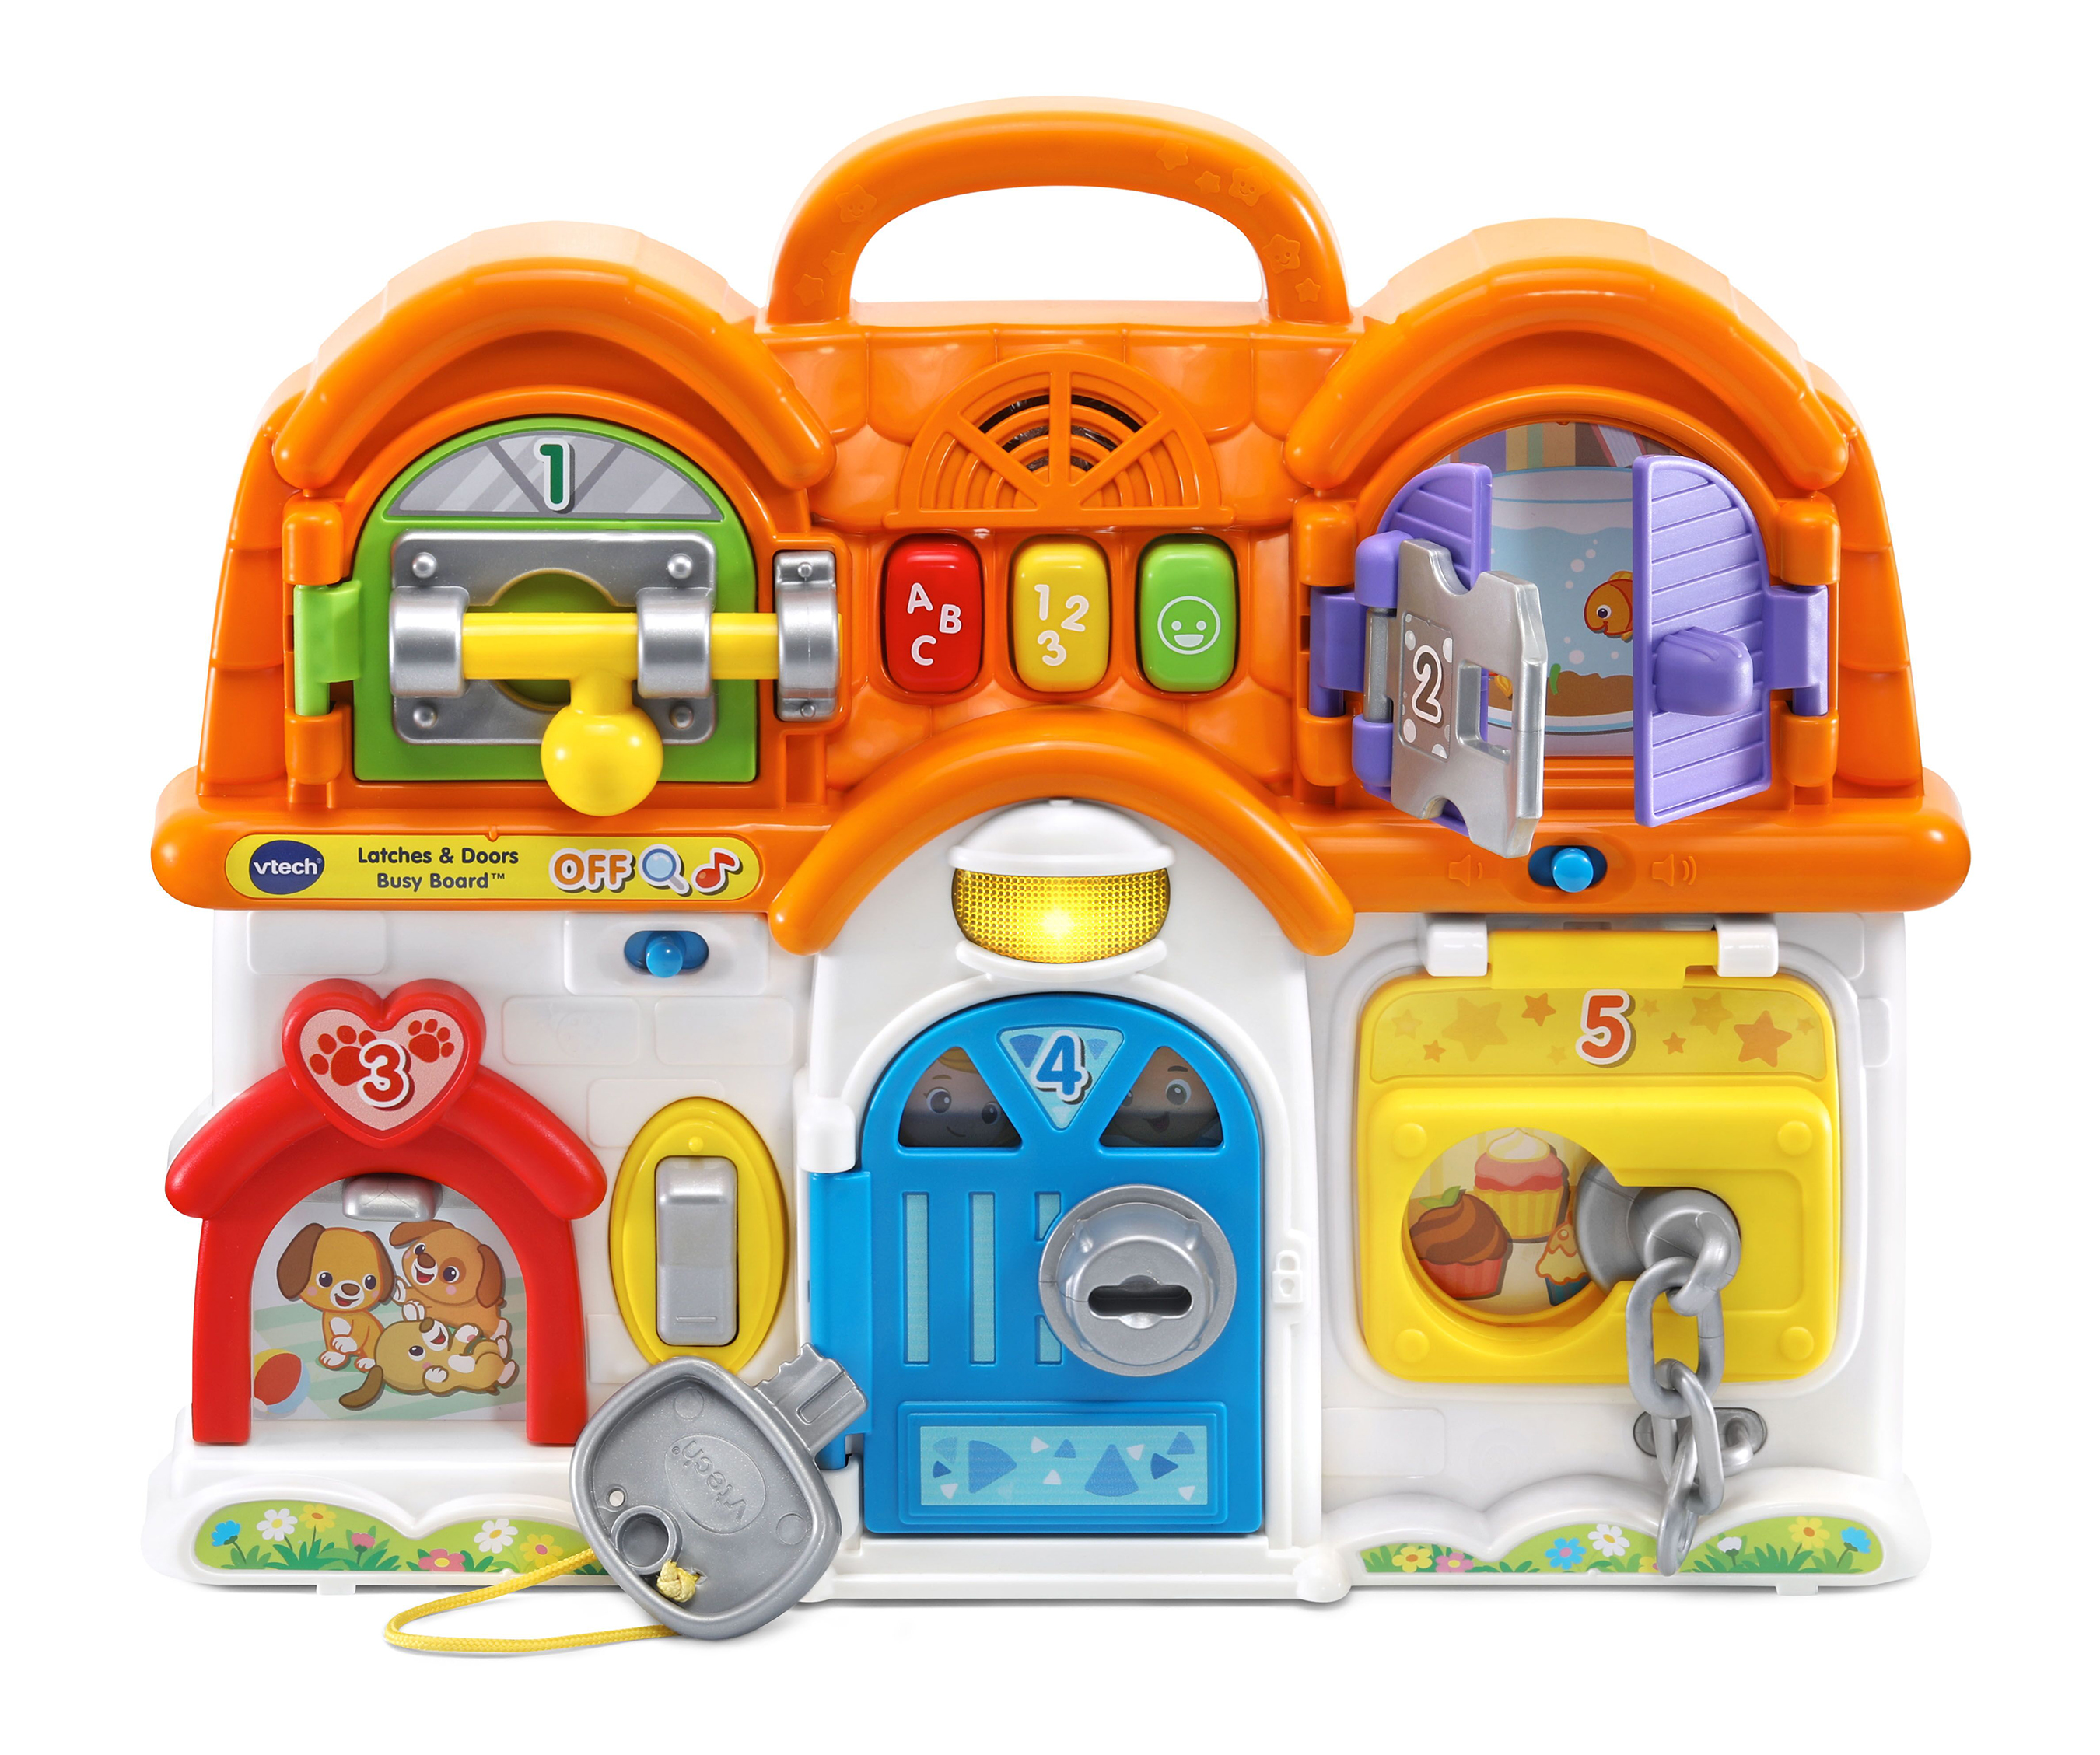 VTech® announces the availability of new infant, toddler and preschool toys, including the Latches & Doors Busy Board™.